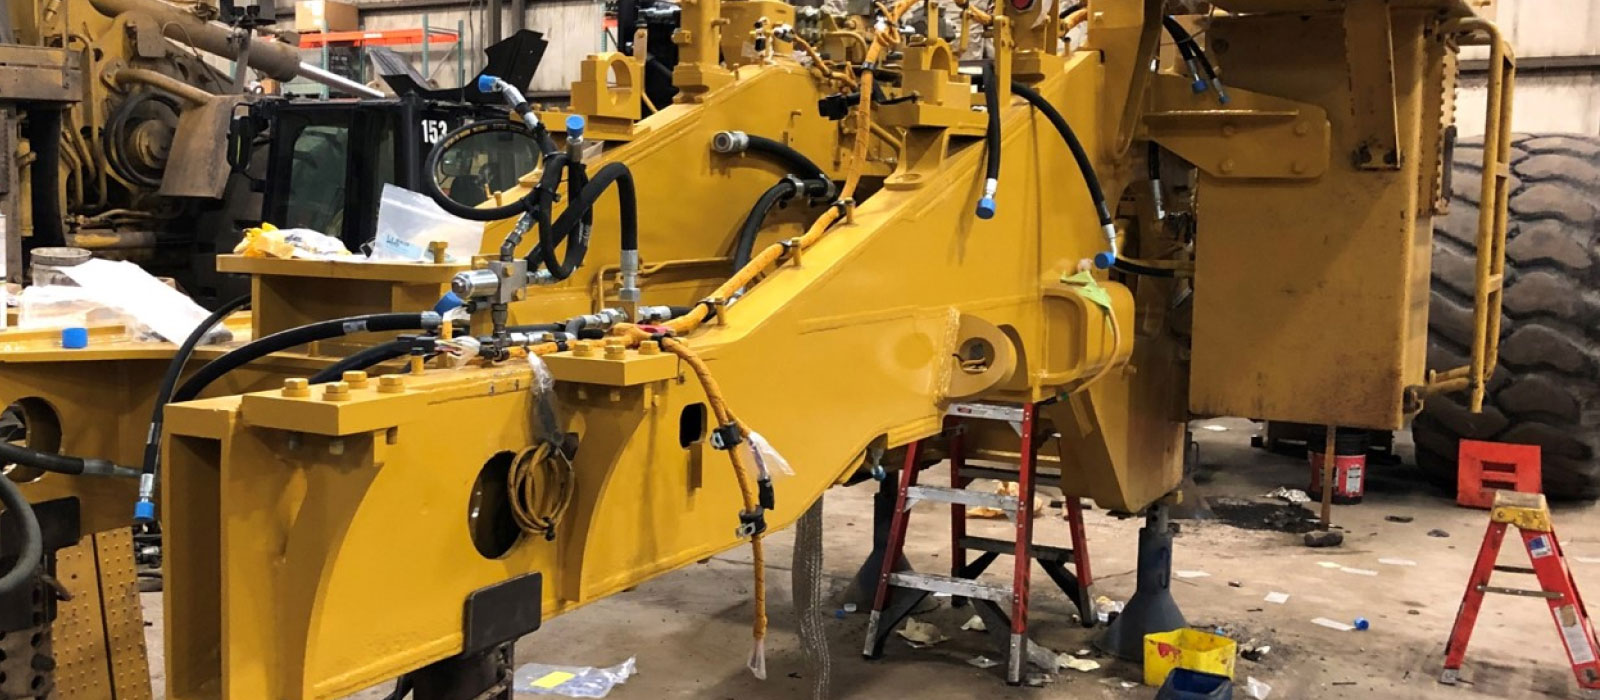 Machine Frame Is Sand-blasted And Painted At Bulk Equipment Corp.